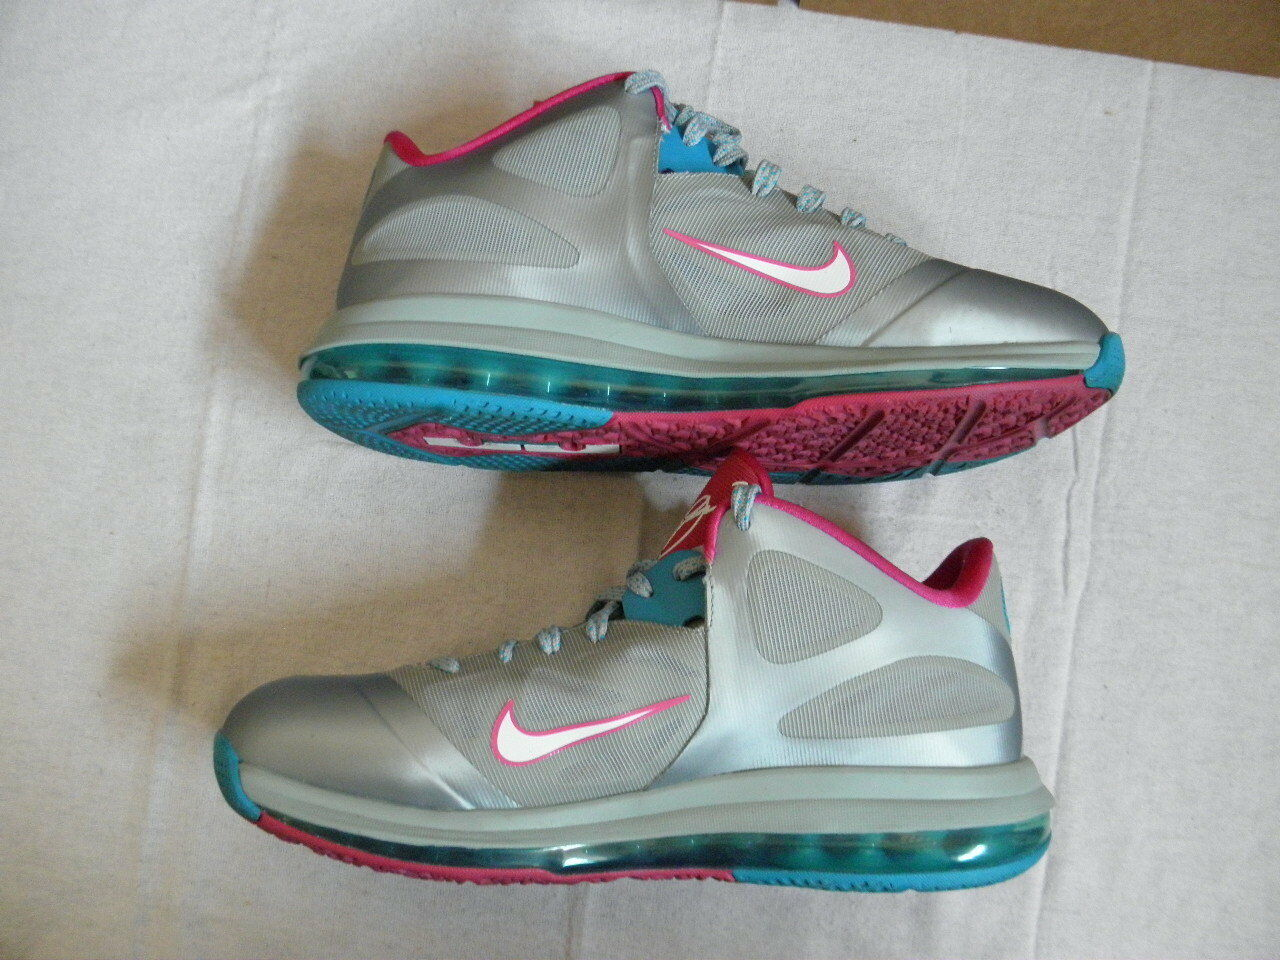 Nike Air Max Max Max LeBron IX 9 Nine Low Fireberry silver pink blue Union sz 10.5 VNDS 6c780a